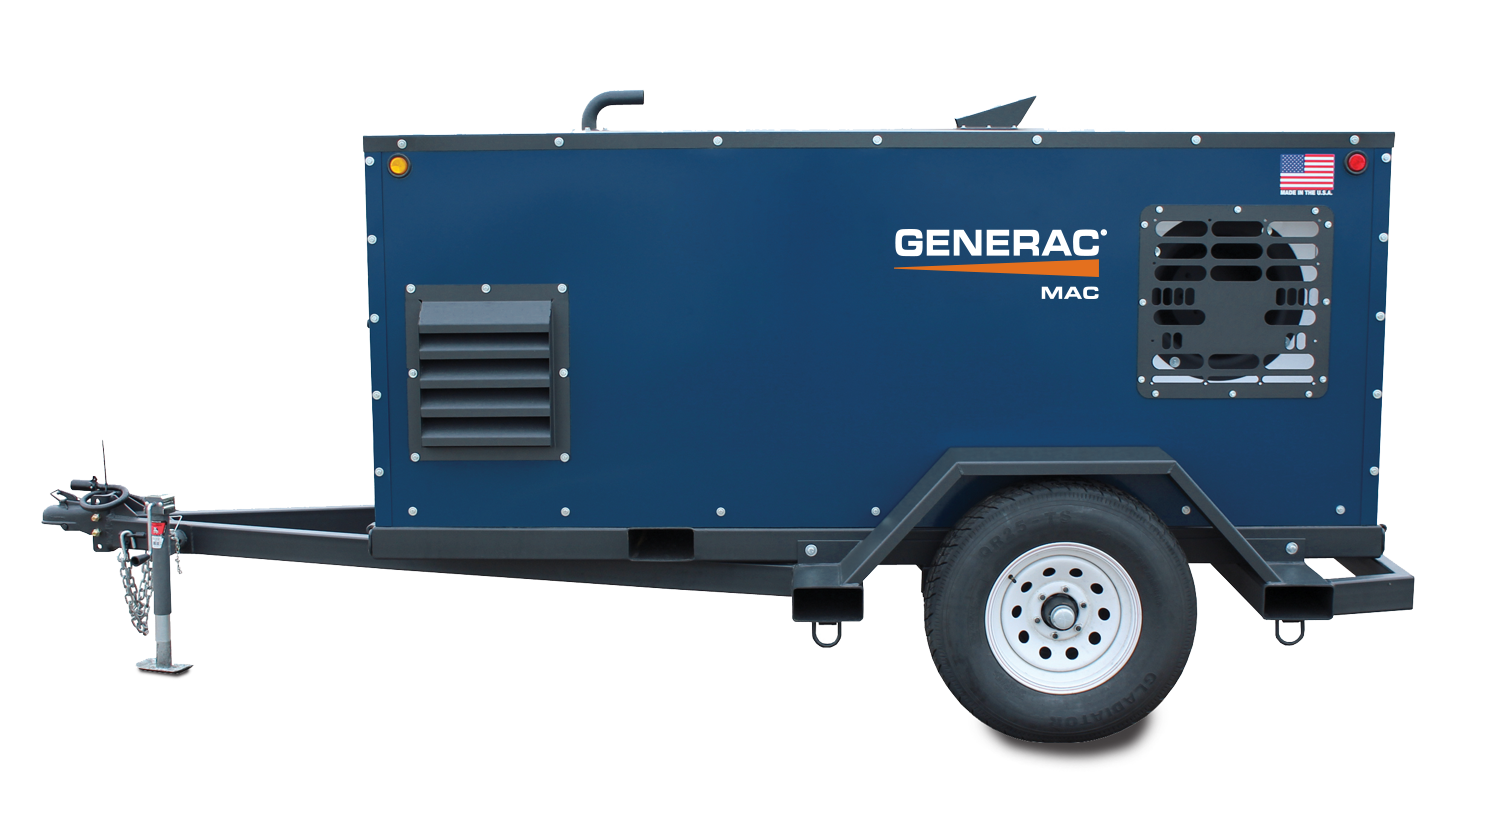 generac mac400g mobile indirect fired heater